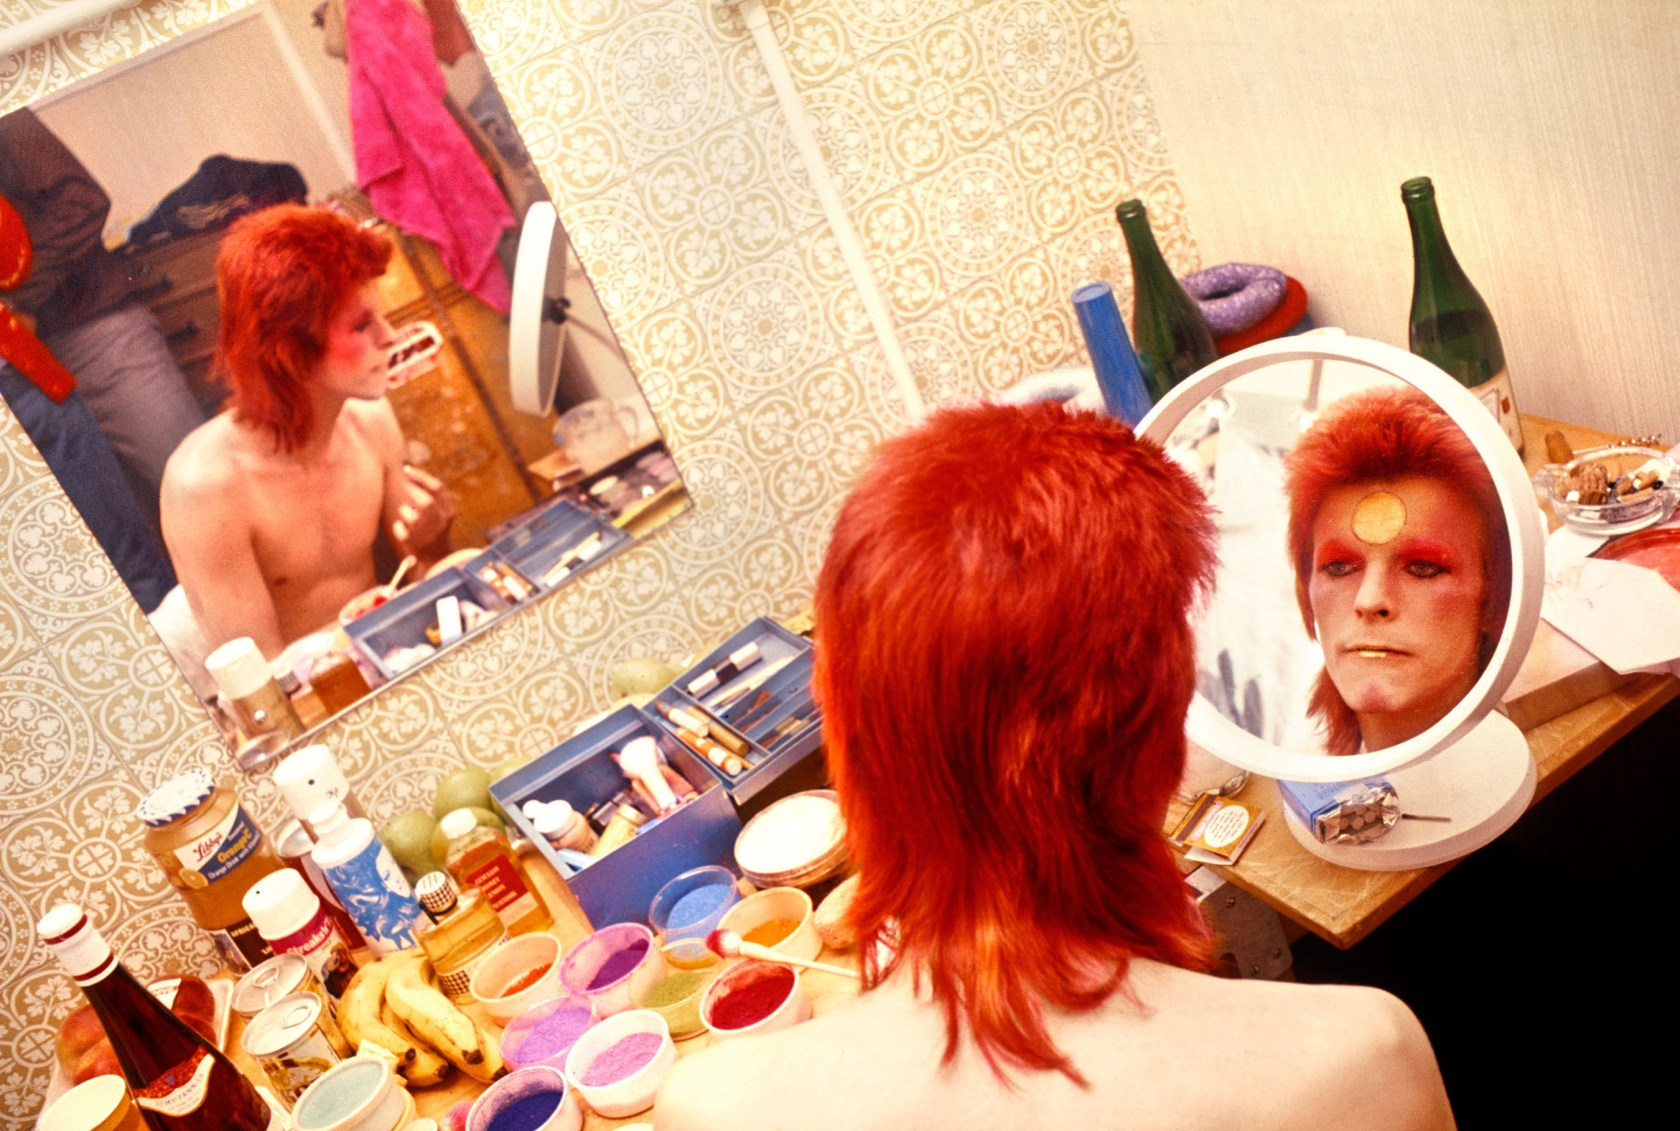 On David Bowie's Makeup Table